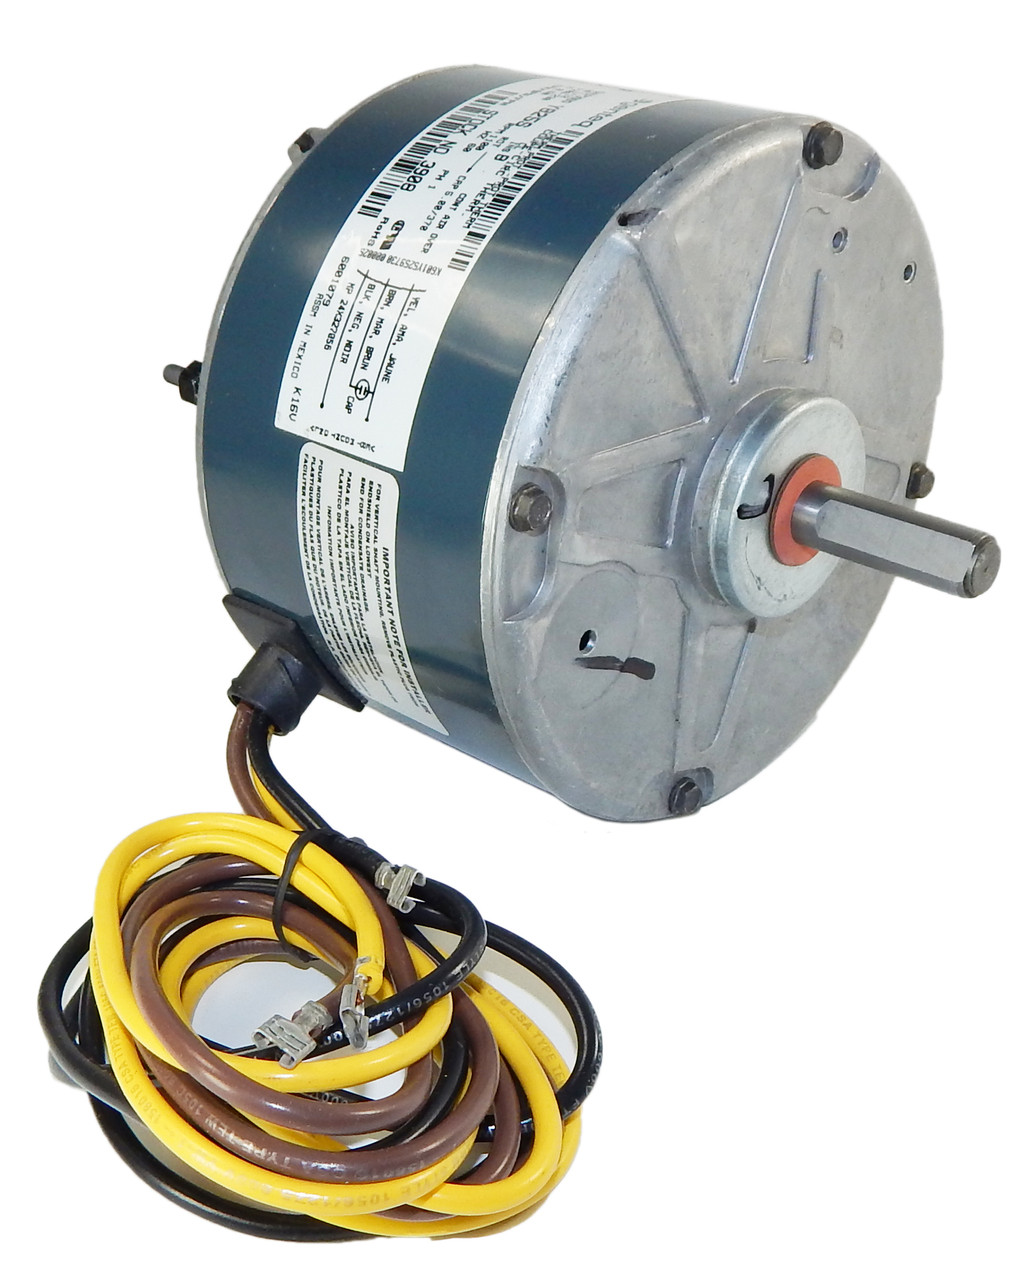 carrier condenser electric motor 5kcp39bgy825s 1 12hp 1075 rpm 208 230v g3908 [ 1032 x 1280 Pixel ]